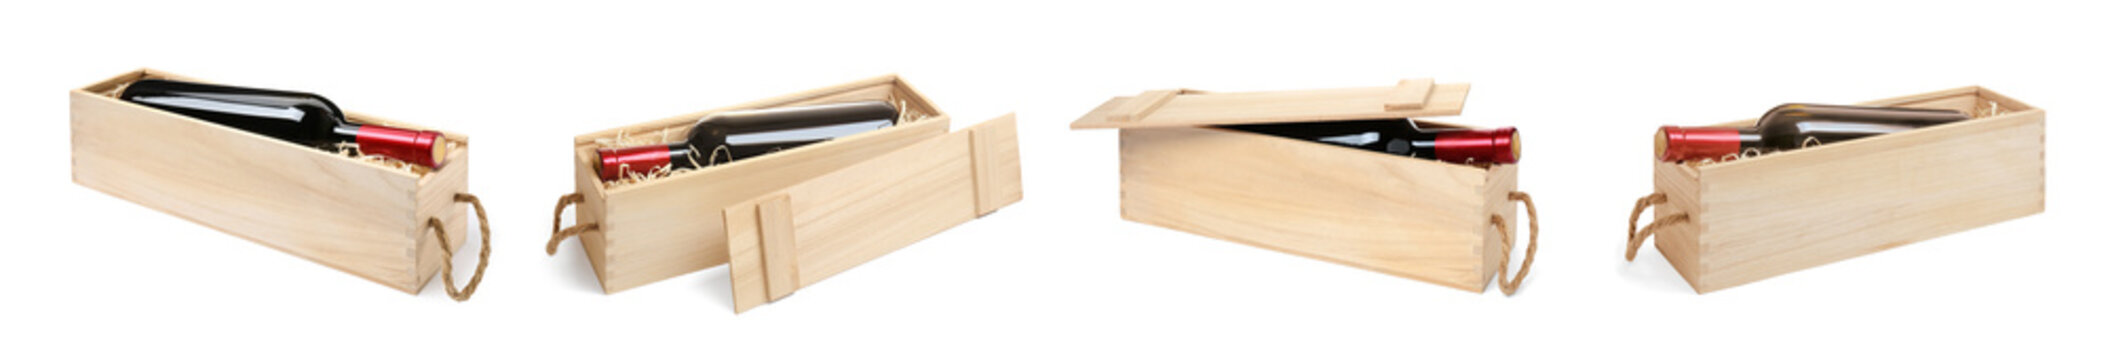 Set of wooden crates with wine on white background